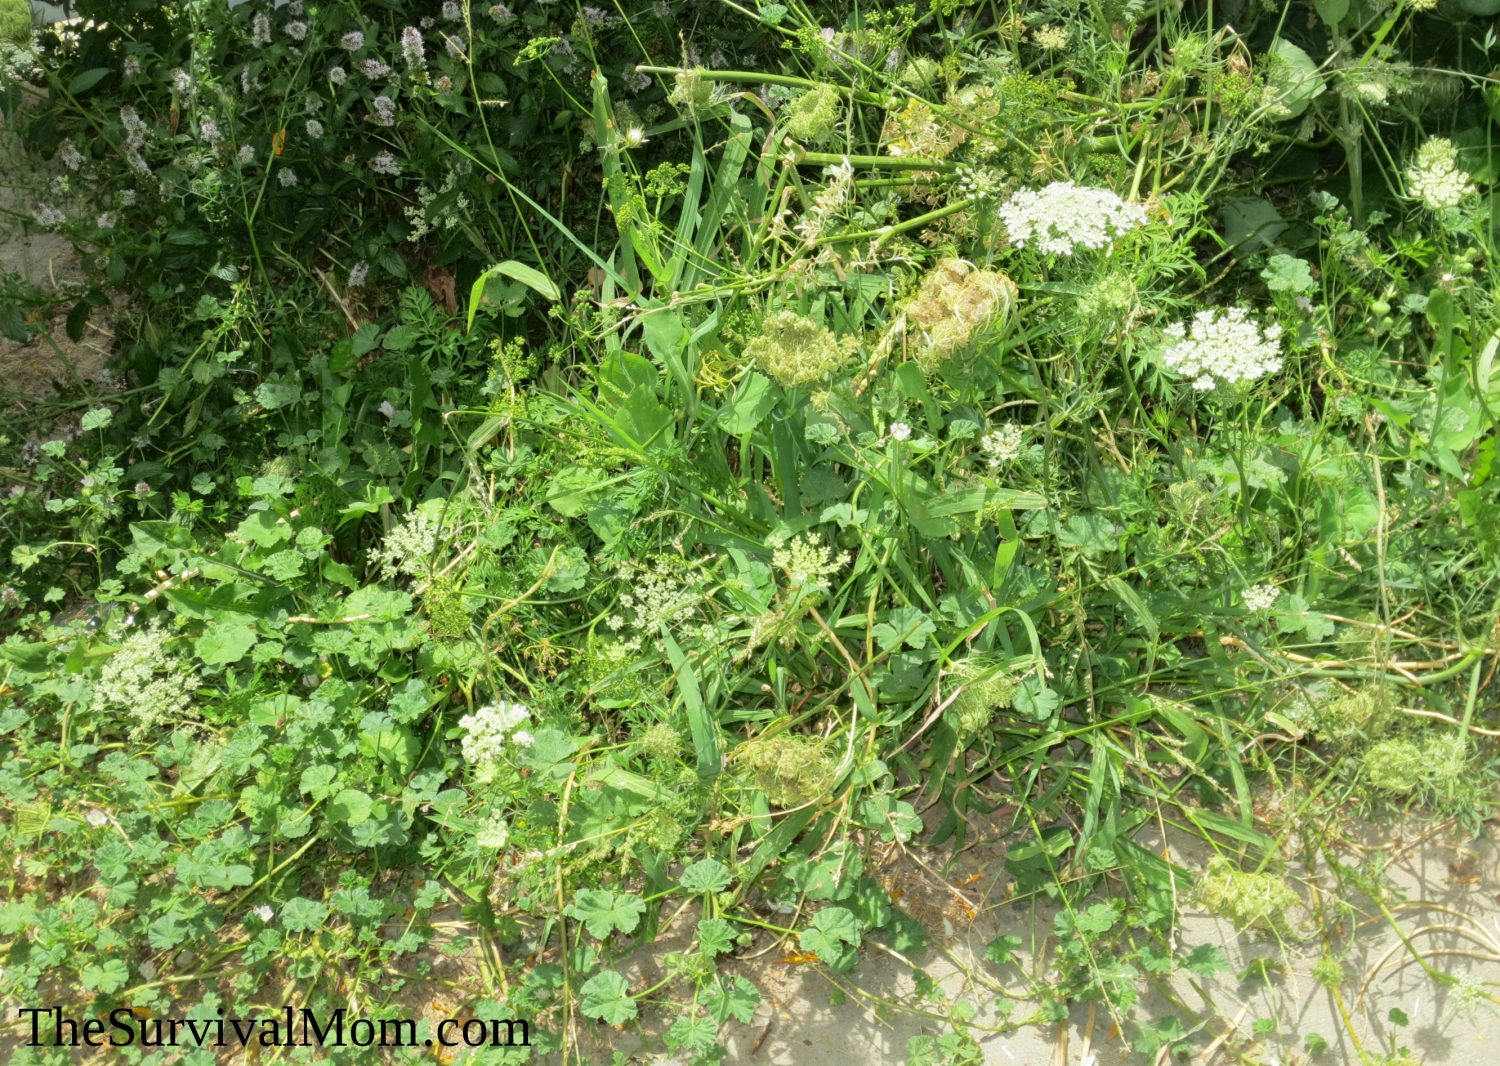 Identifying weeds in flower beds - The Author S Very Own Overgrown Flowerbed Pictured Common Mallow Peppermint Carrots And